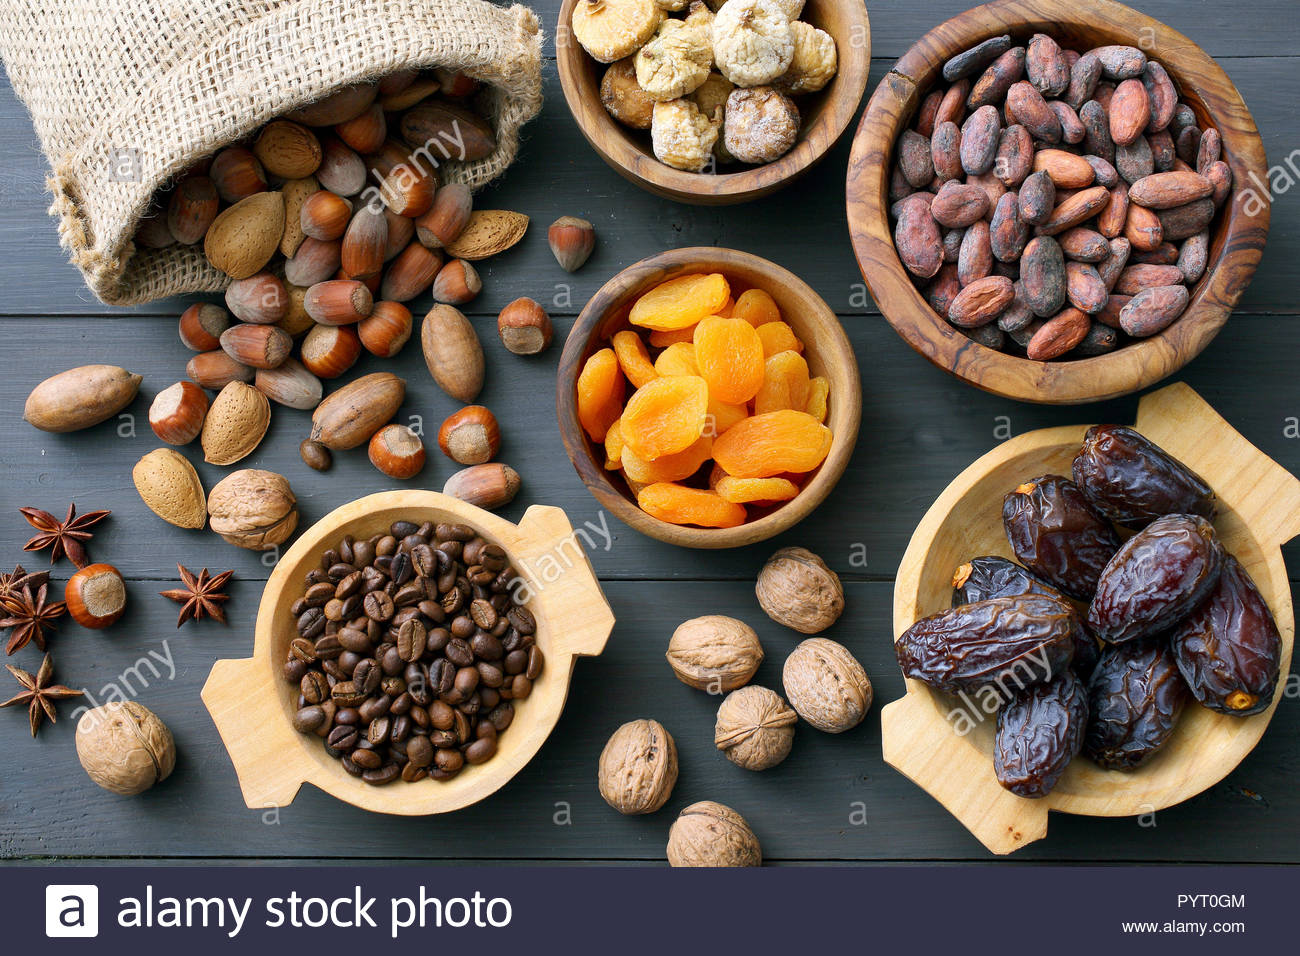 Different dried fruits and nuts in wooden bowls Stock Photo